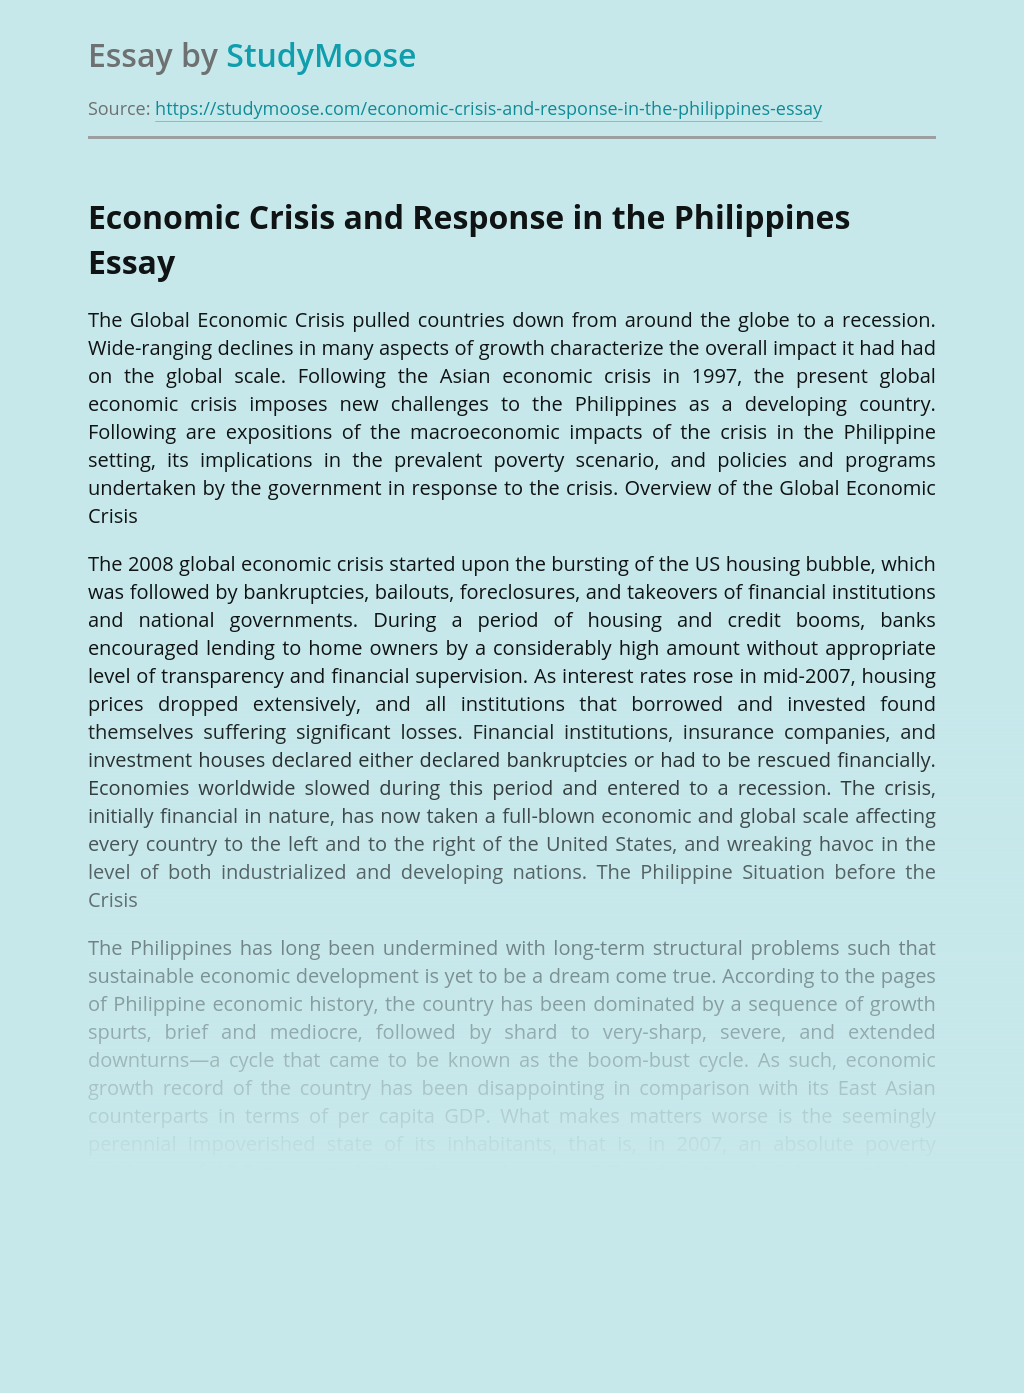 Economic Crisis and Response in the Philippines